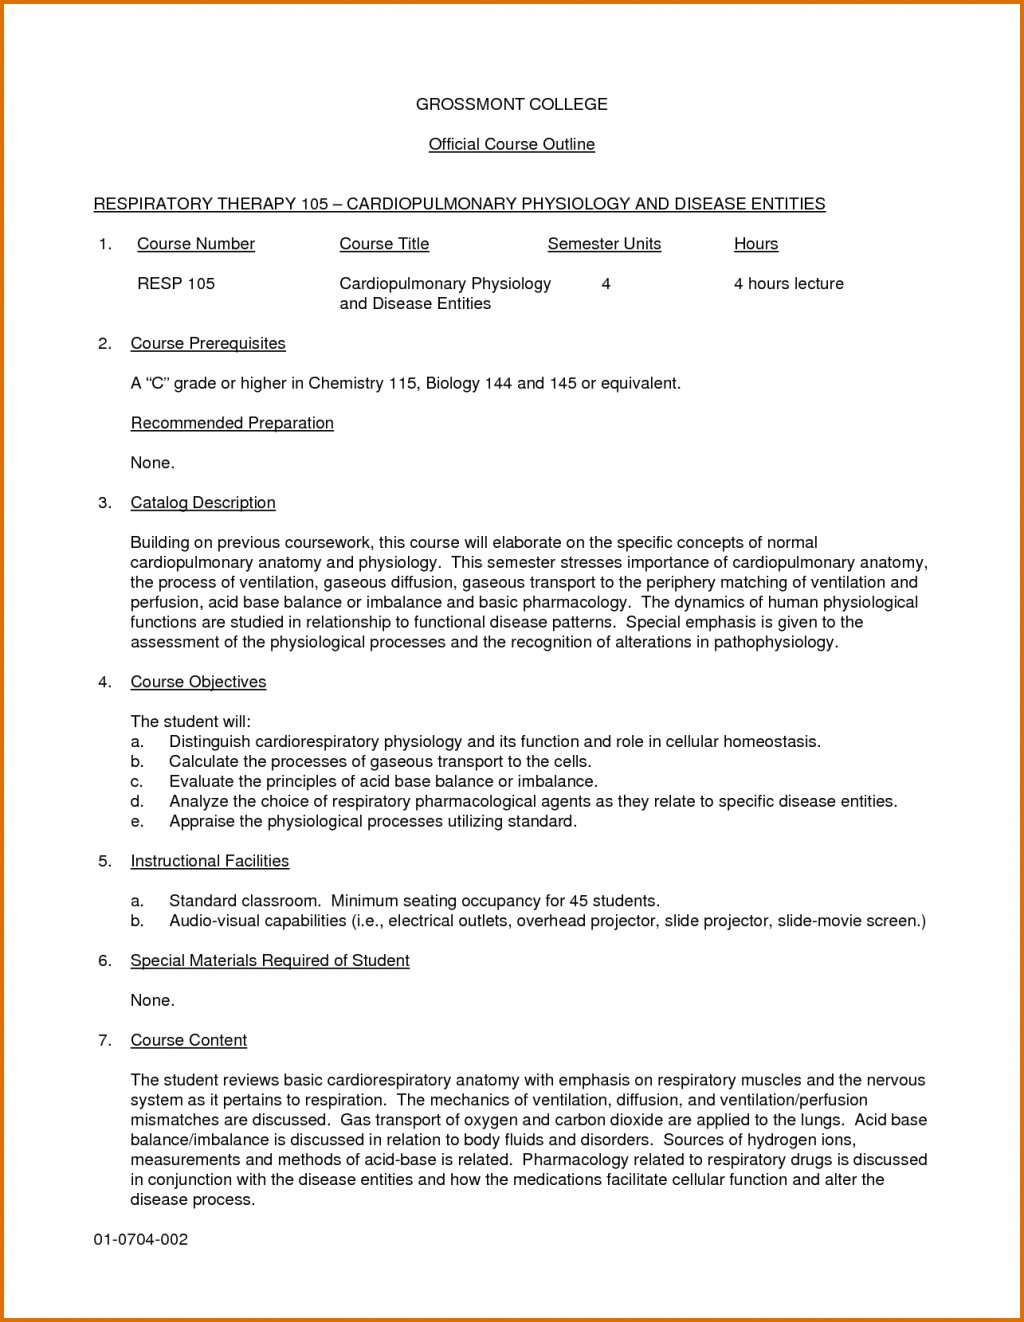 008 Research Paper Outline Template Staggering Biology How To Write A Scientific Pdf An Abstract For Conclusion Large